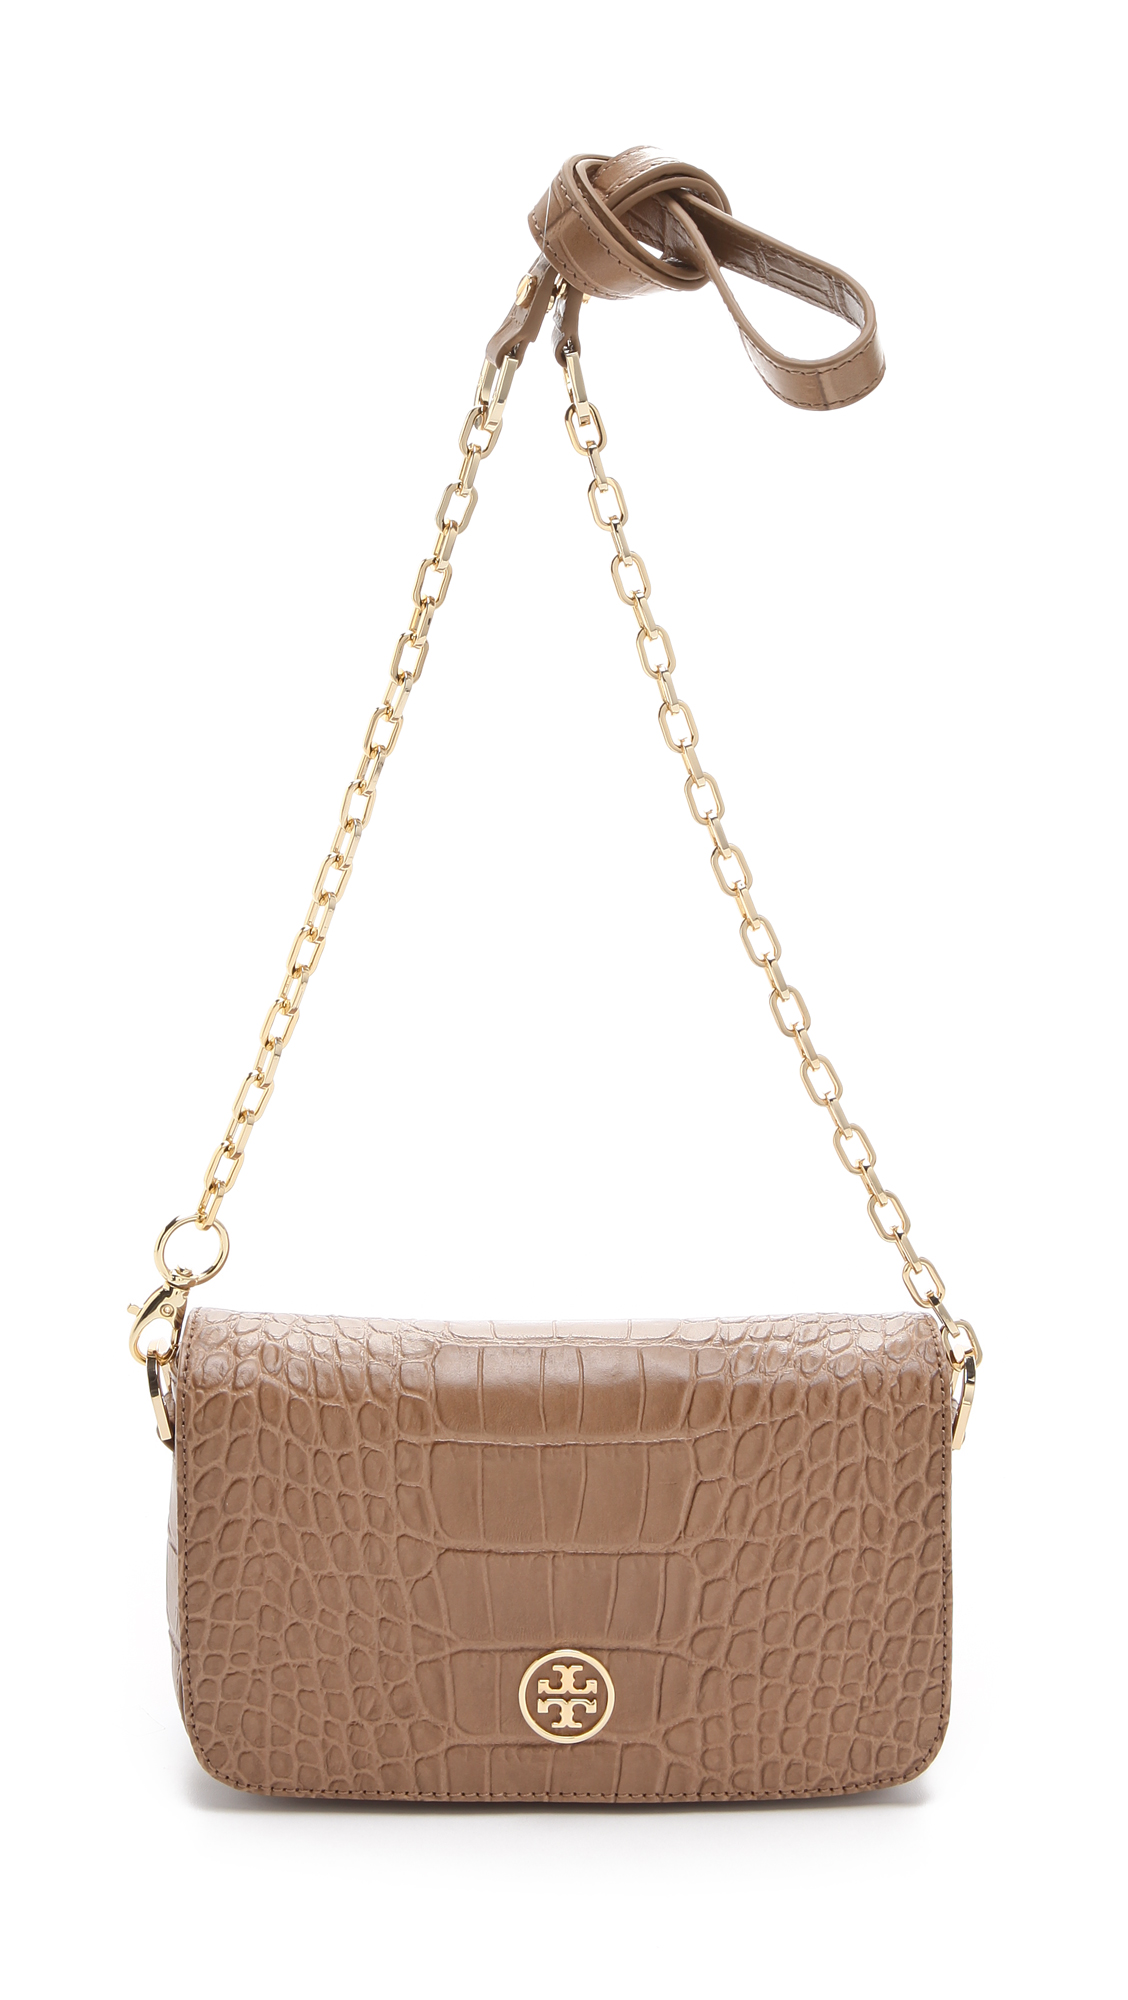 HANDBAGS Our women's handbag collections — from new arrivals and runway trends to the classics for work and weekend: totes, cross-body bags, satchels and mini bags in .